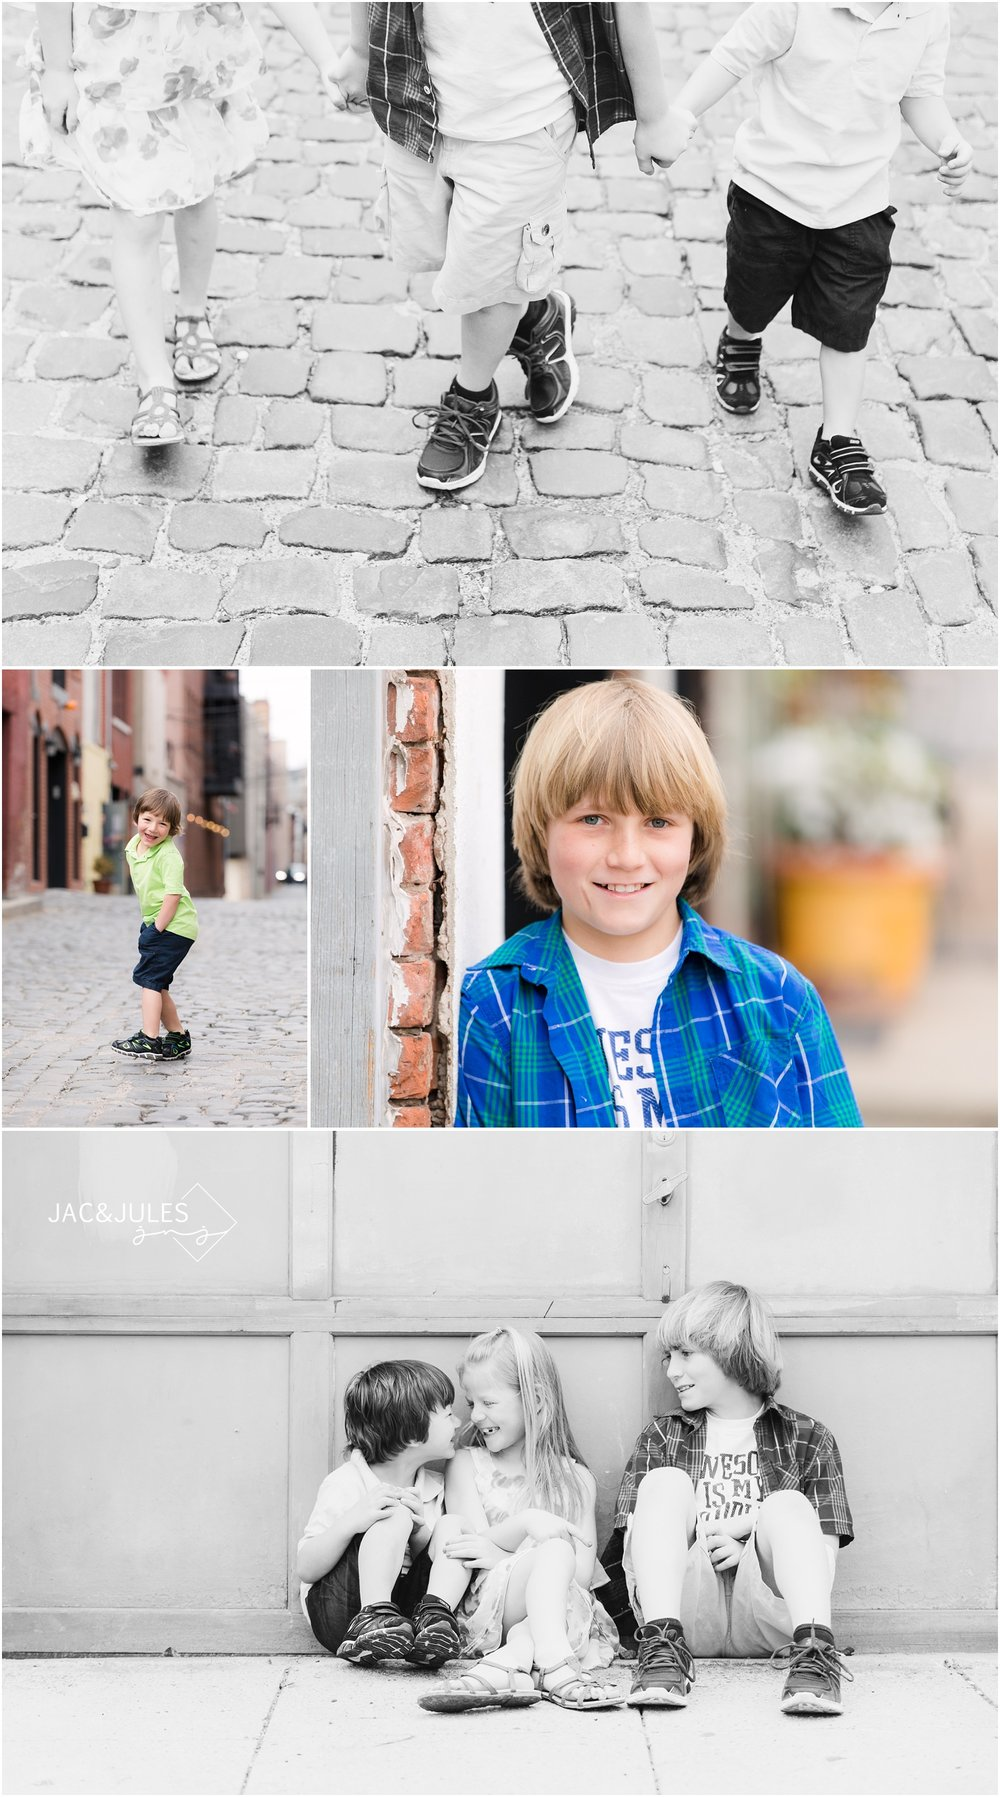 Kids on cobblestone street in Hoboken, NJ.